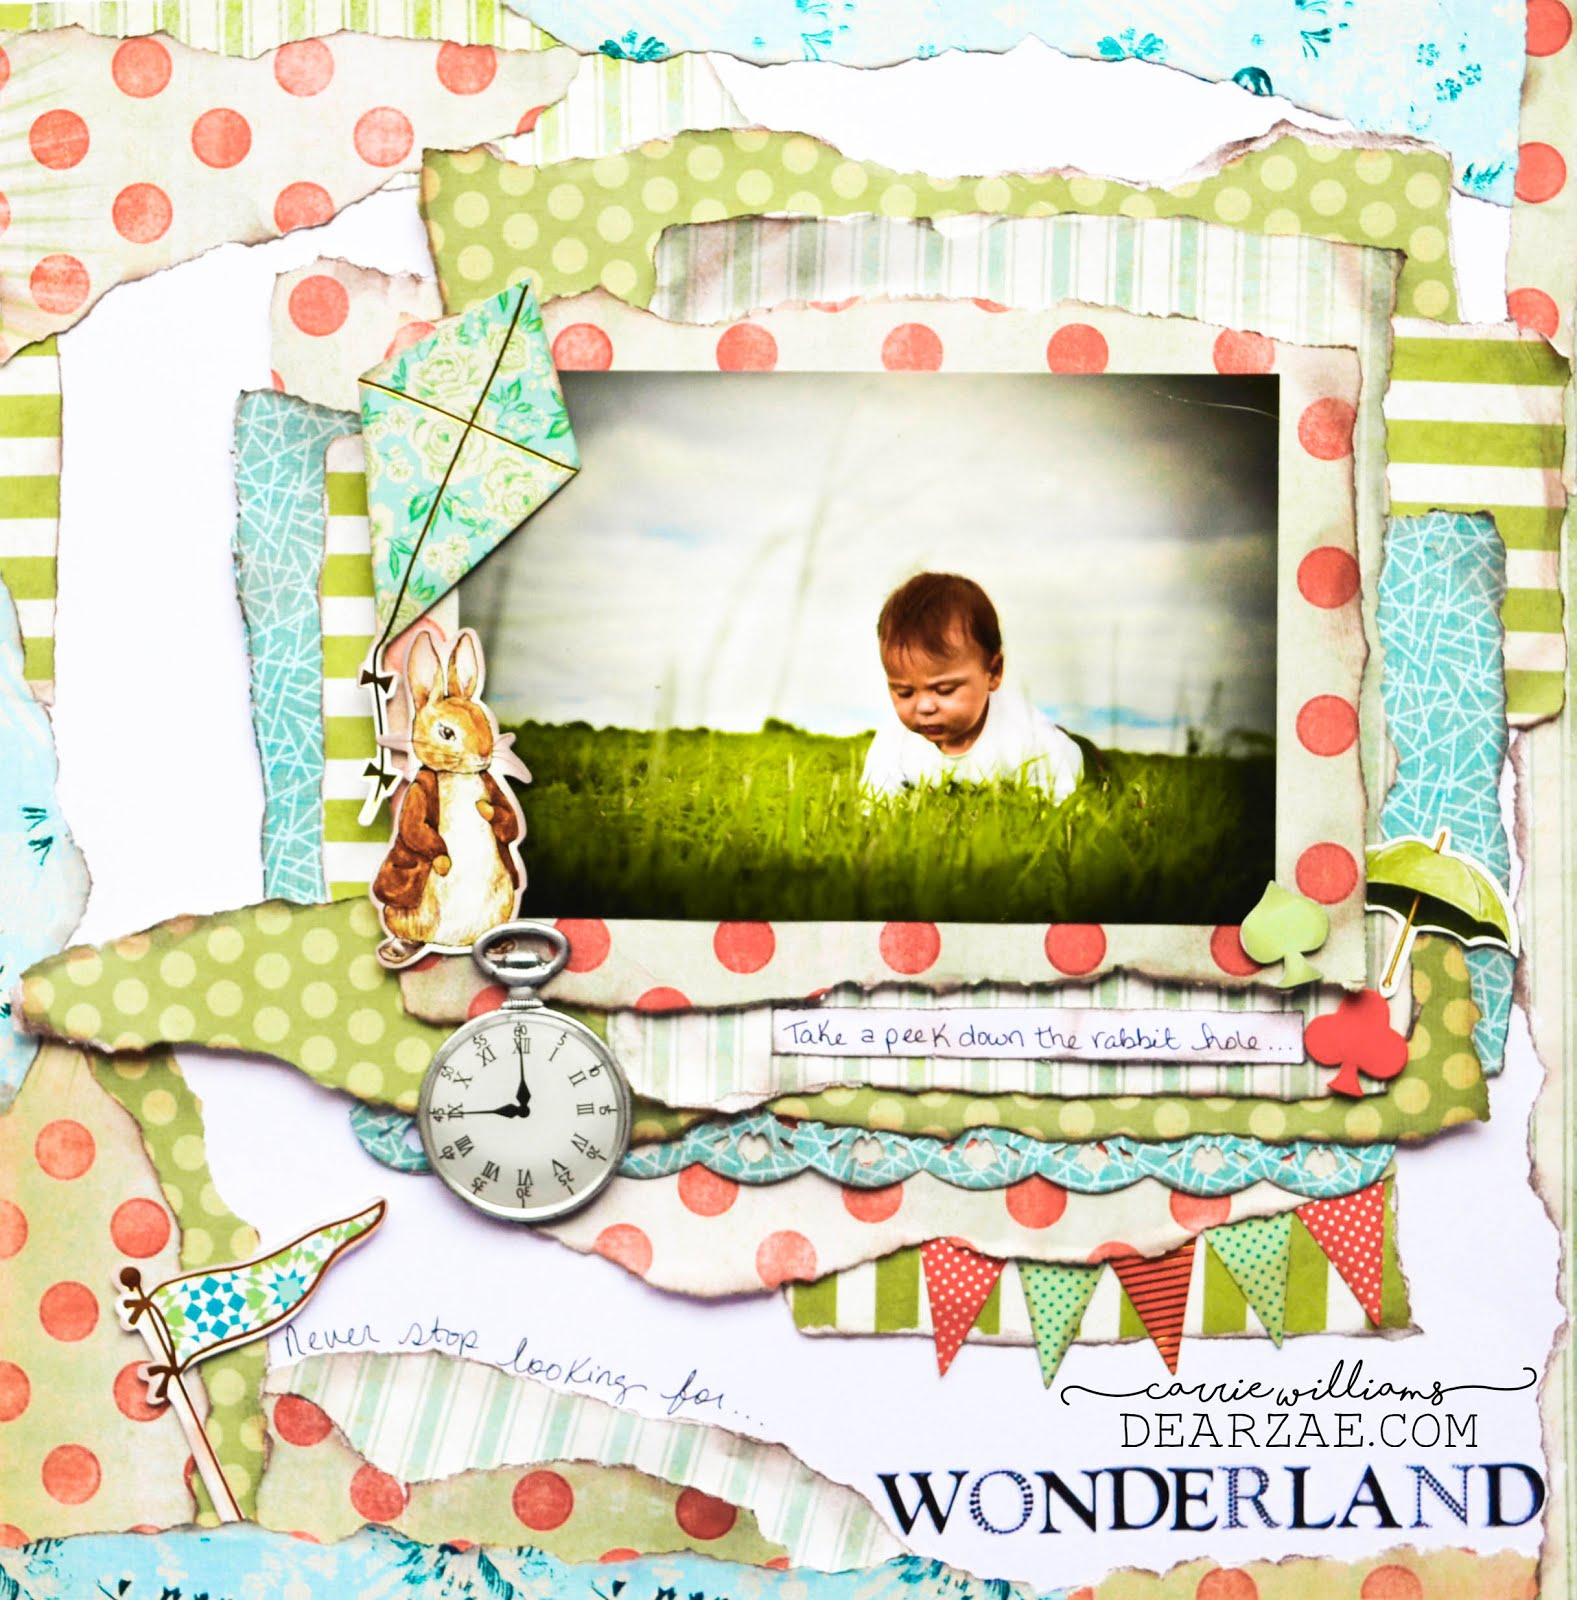 Alice in Wonderland themed scrapbook layout page with die cut rabbit, kite, flag, pennant bunting, and patterned papers in stripes and polka dots in red, olive green, and aqua blue.